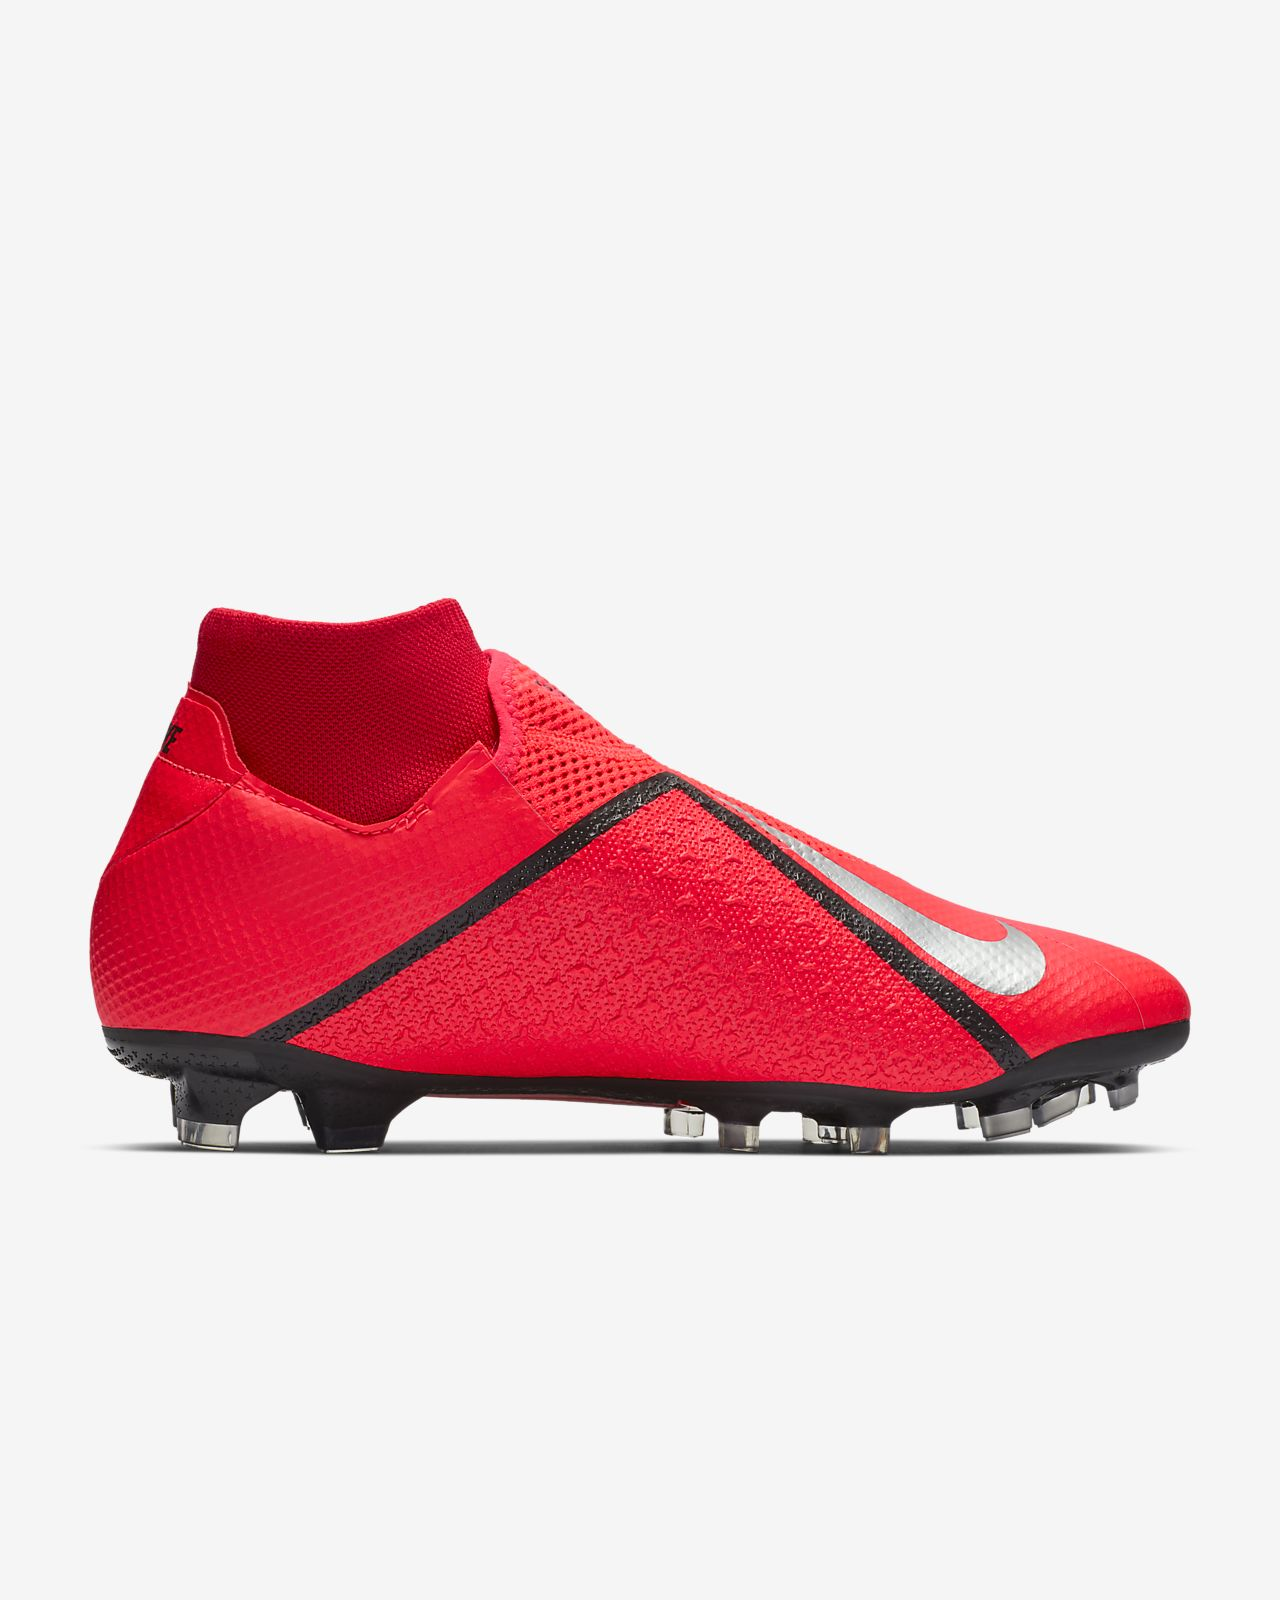 ... Nike PhantomVSN Pro Dynamic Fit Game Over FG Firm-Ground Football Boot 8153dae76a0dd